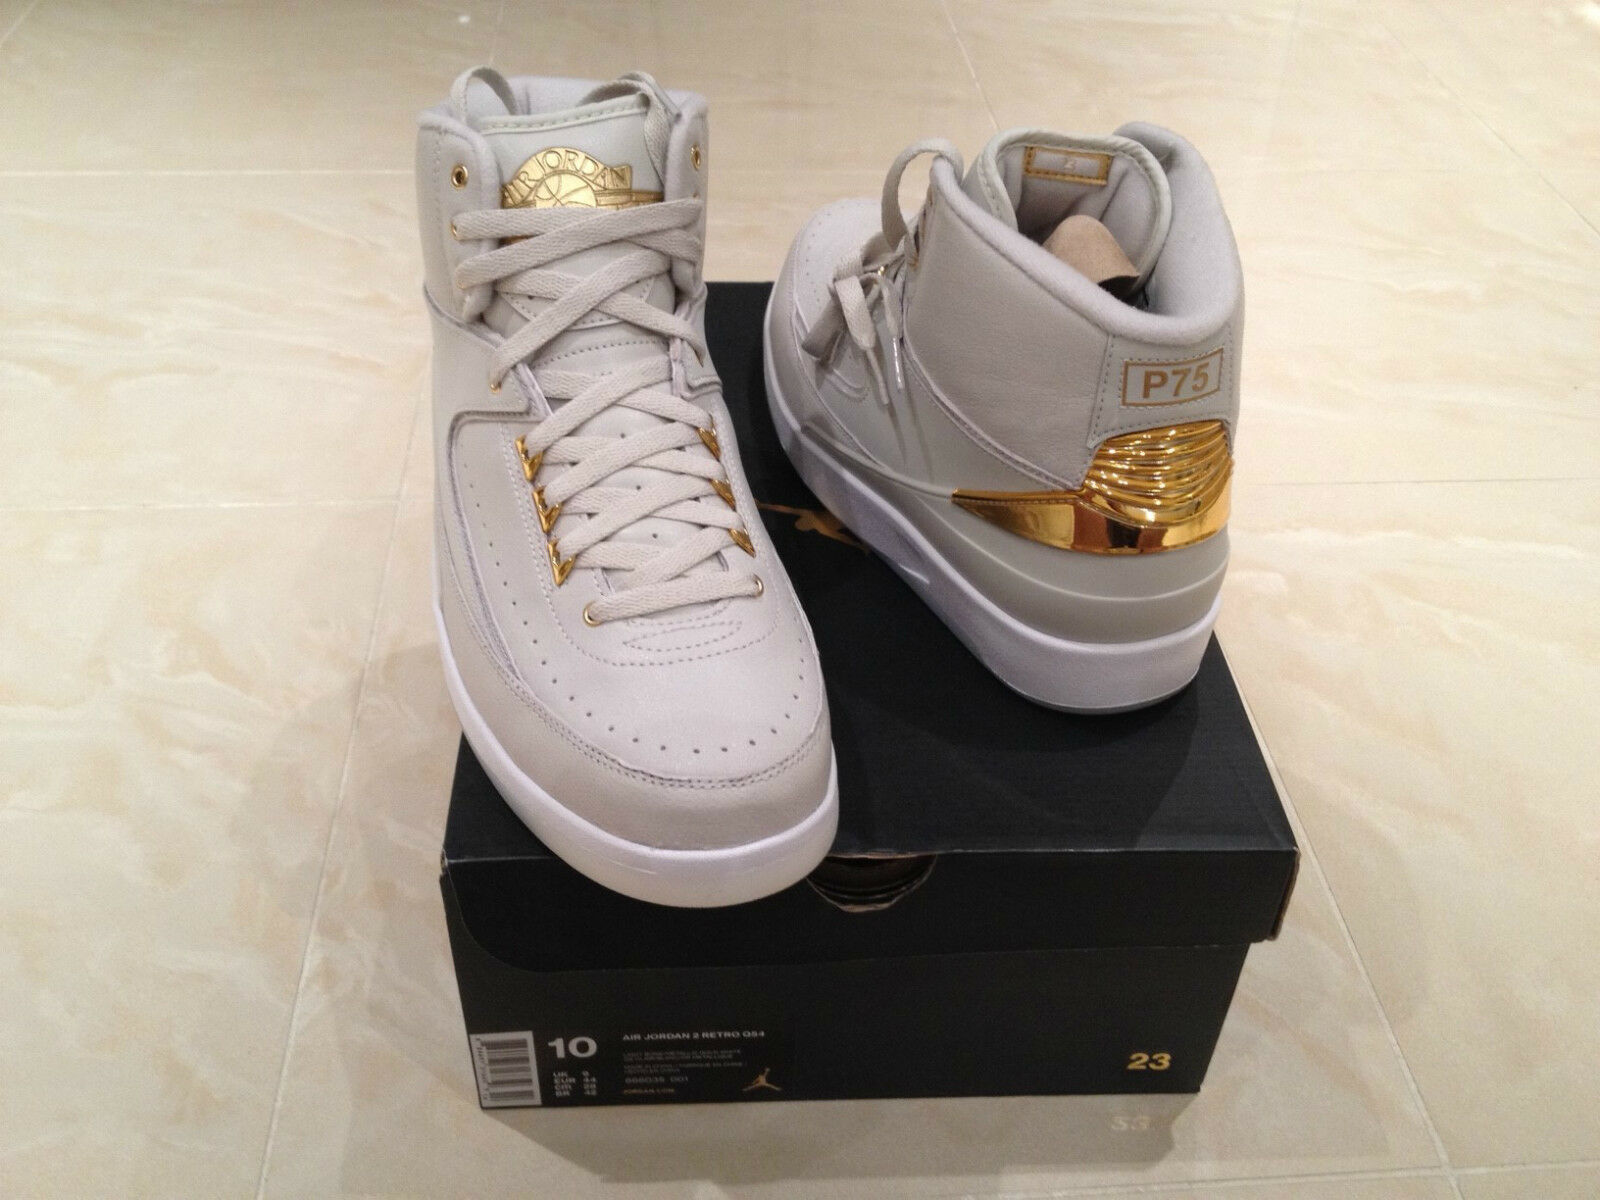 2018 NIKE AIR JORDAN 2 RETRO Q54 QUAI 54 blanc GOLD ALL SIZES6 7 8 9 10 11